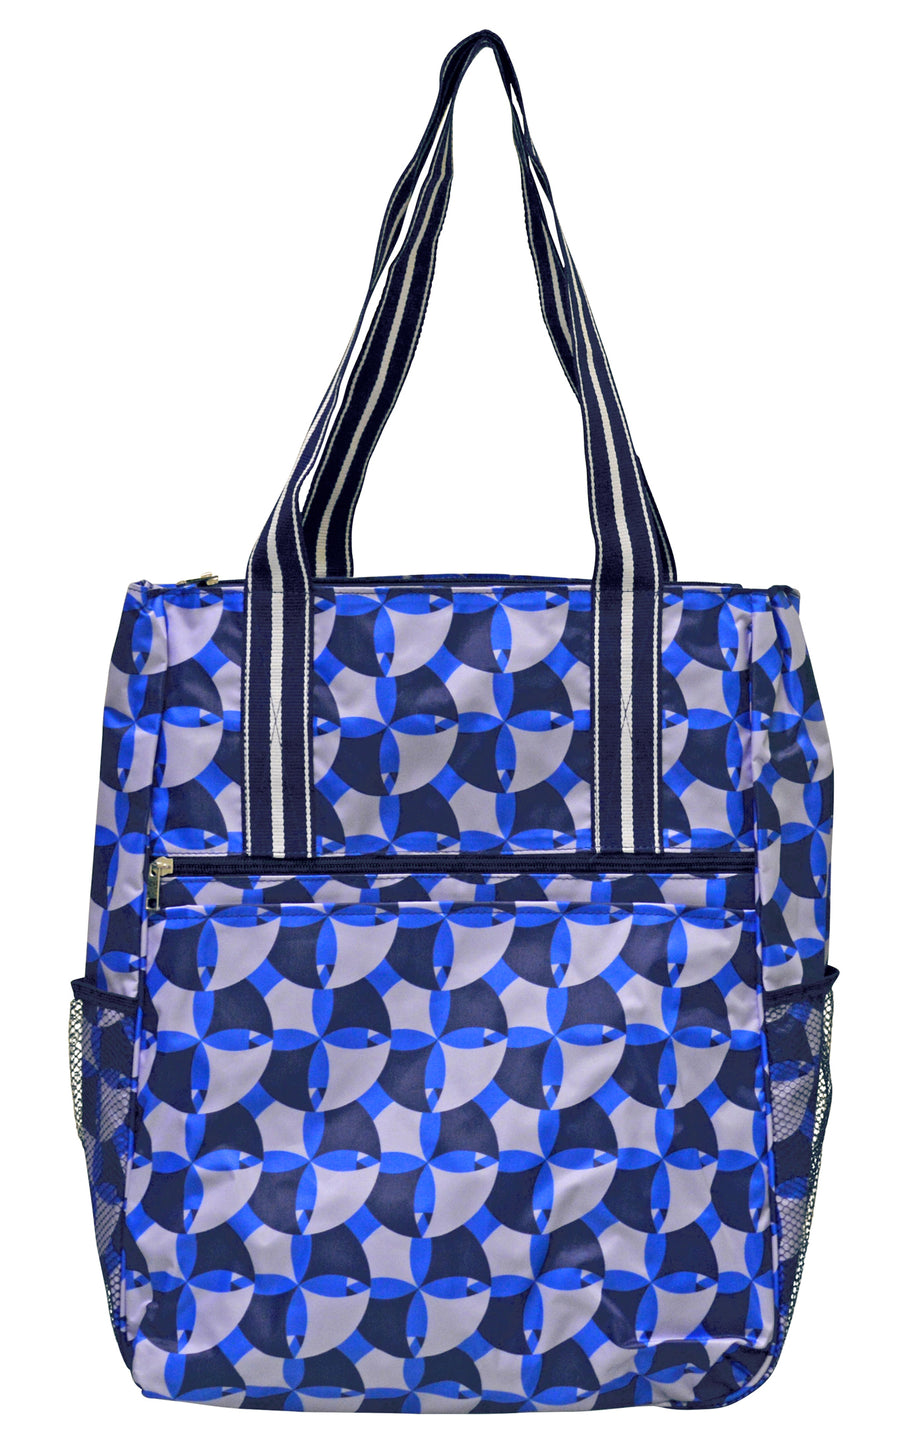 All For Color-Serve It Up Shoulder Bag - FINAL SALE-Tennis Shoulder Bag